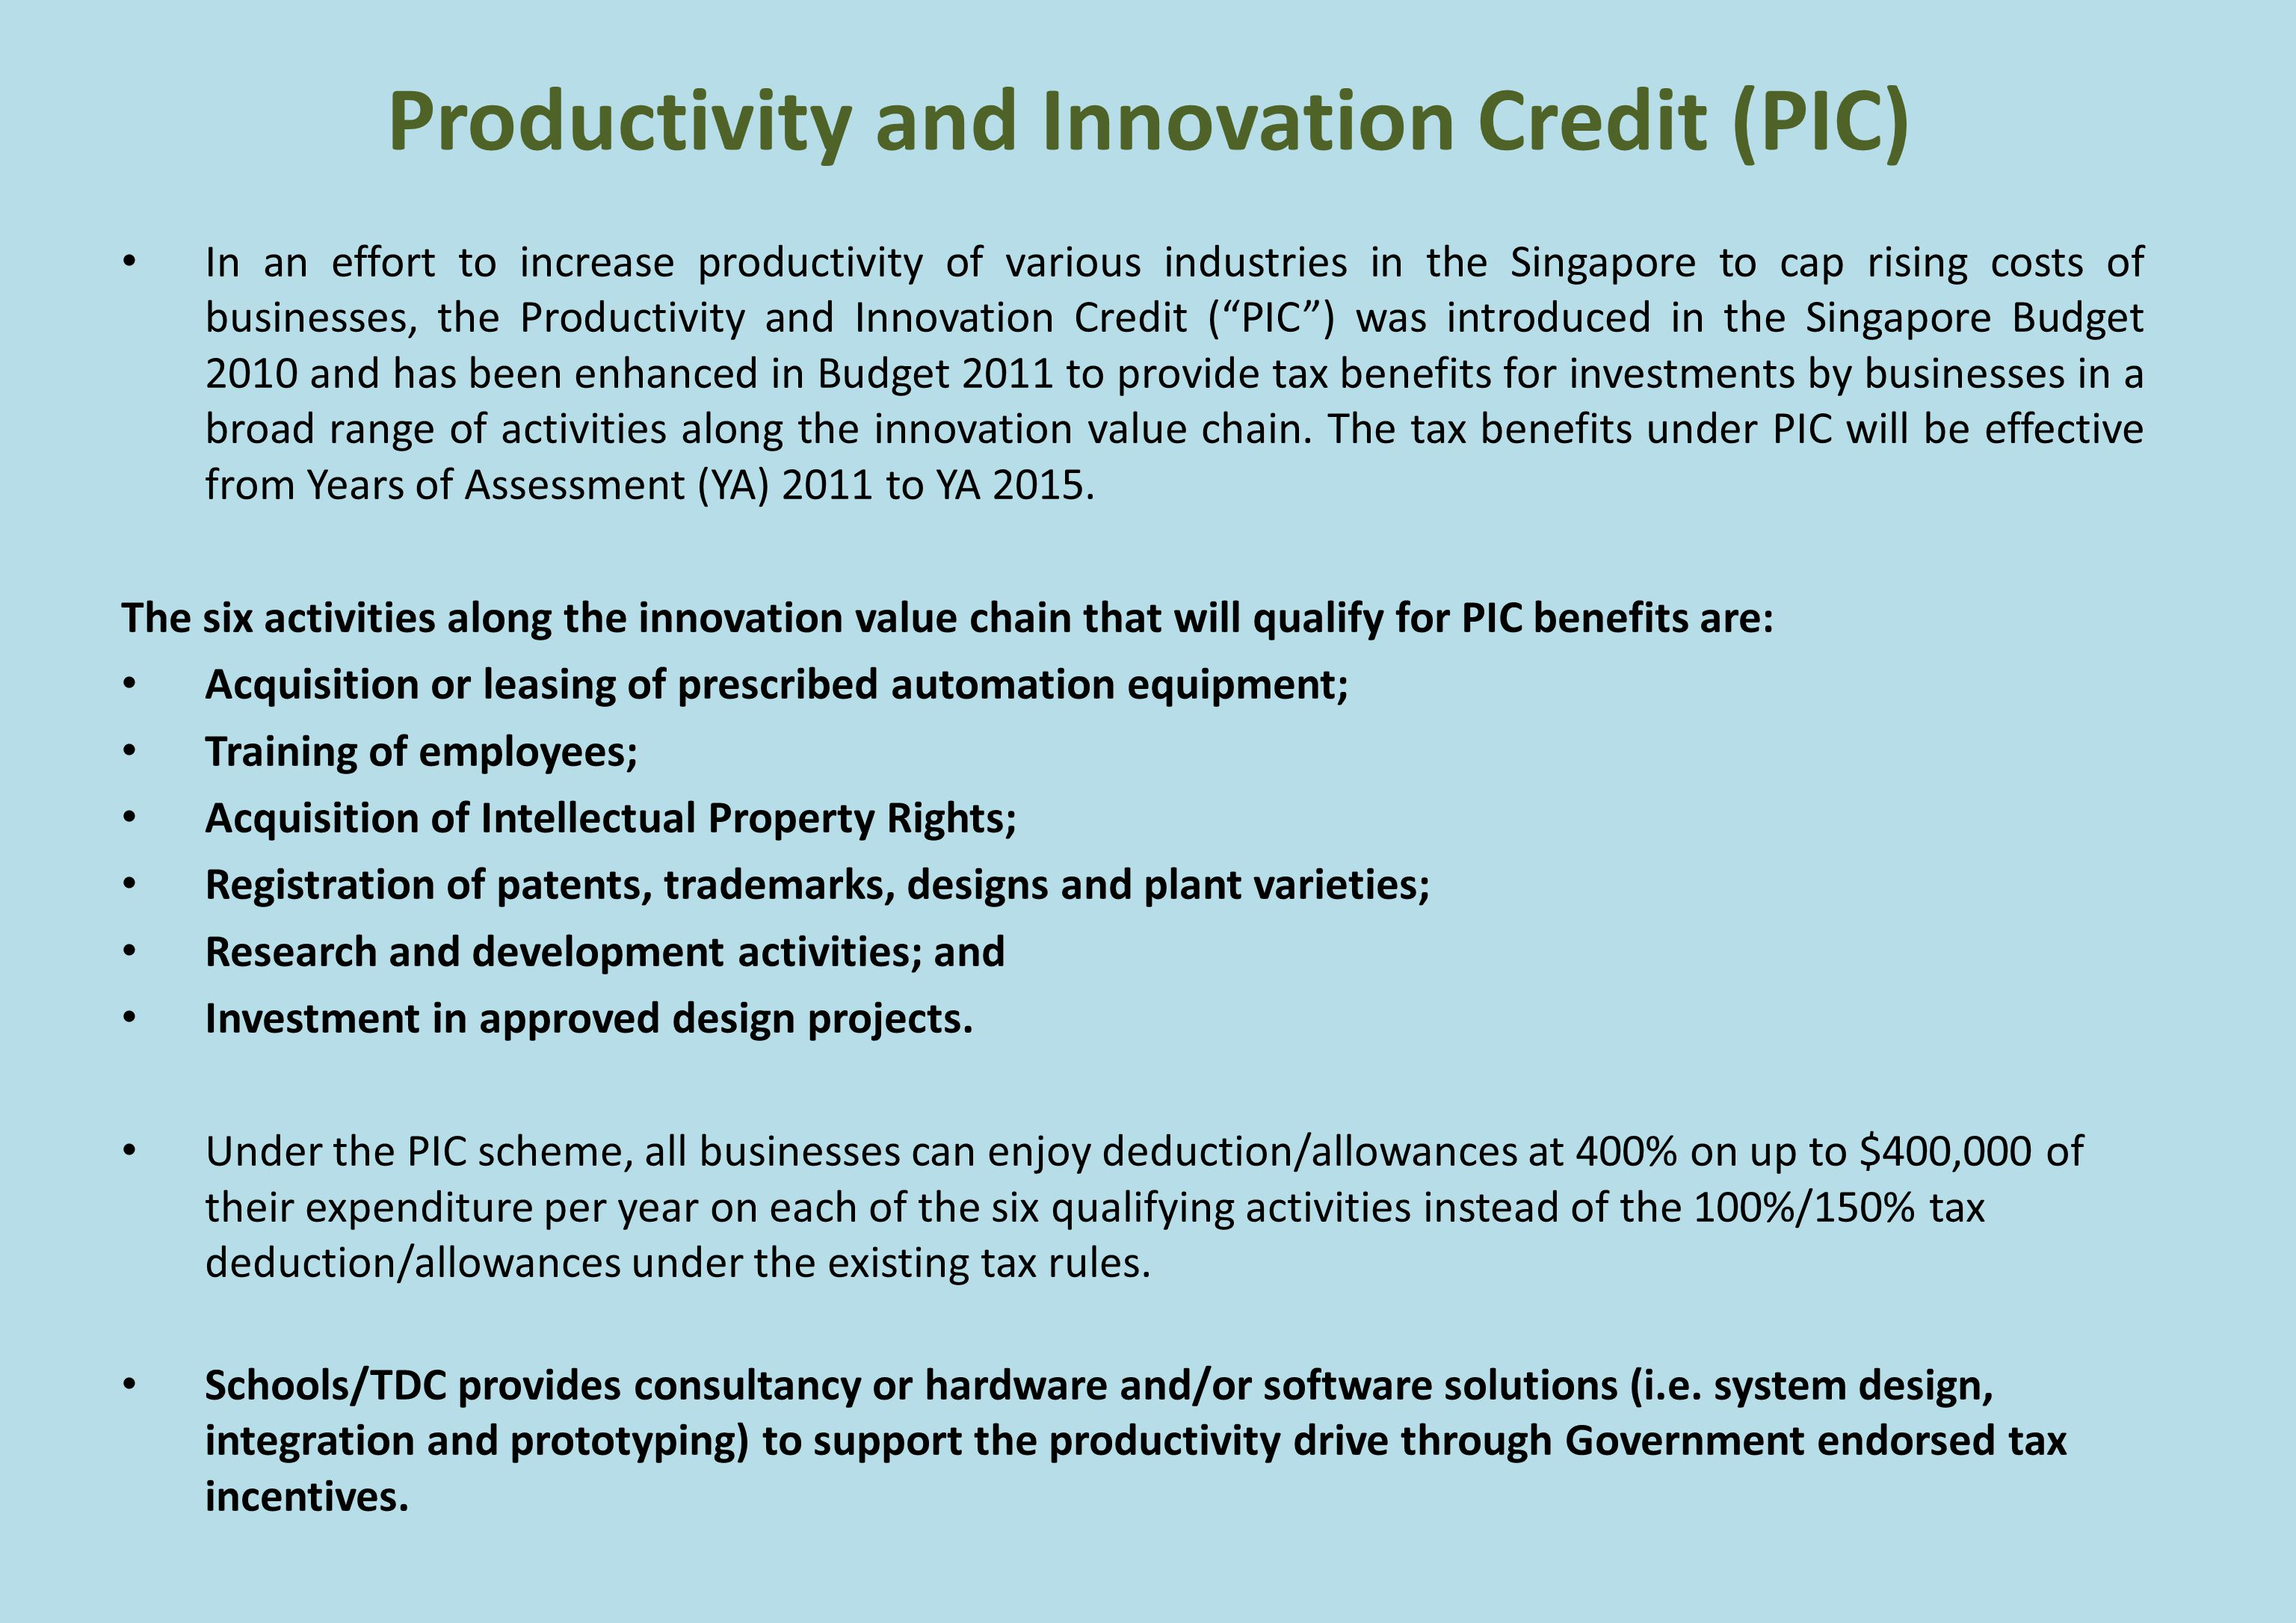 Productivity and Innovation Credit (PIC) In an effort to increase productivity of various industries in the Singapore to cap rising costs of businesses, the Productivity and Innovation Credit ( PIC ) was introduced in the Singapore Budget 2010 and has been enhanced in Budget 2011 to provide tax benefits for investments by businesses in a broad range of activities along the innovation value chain.